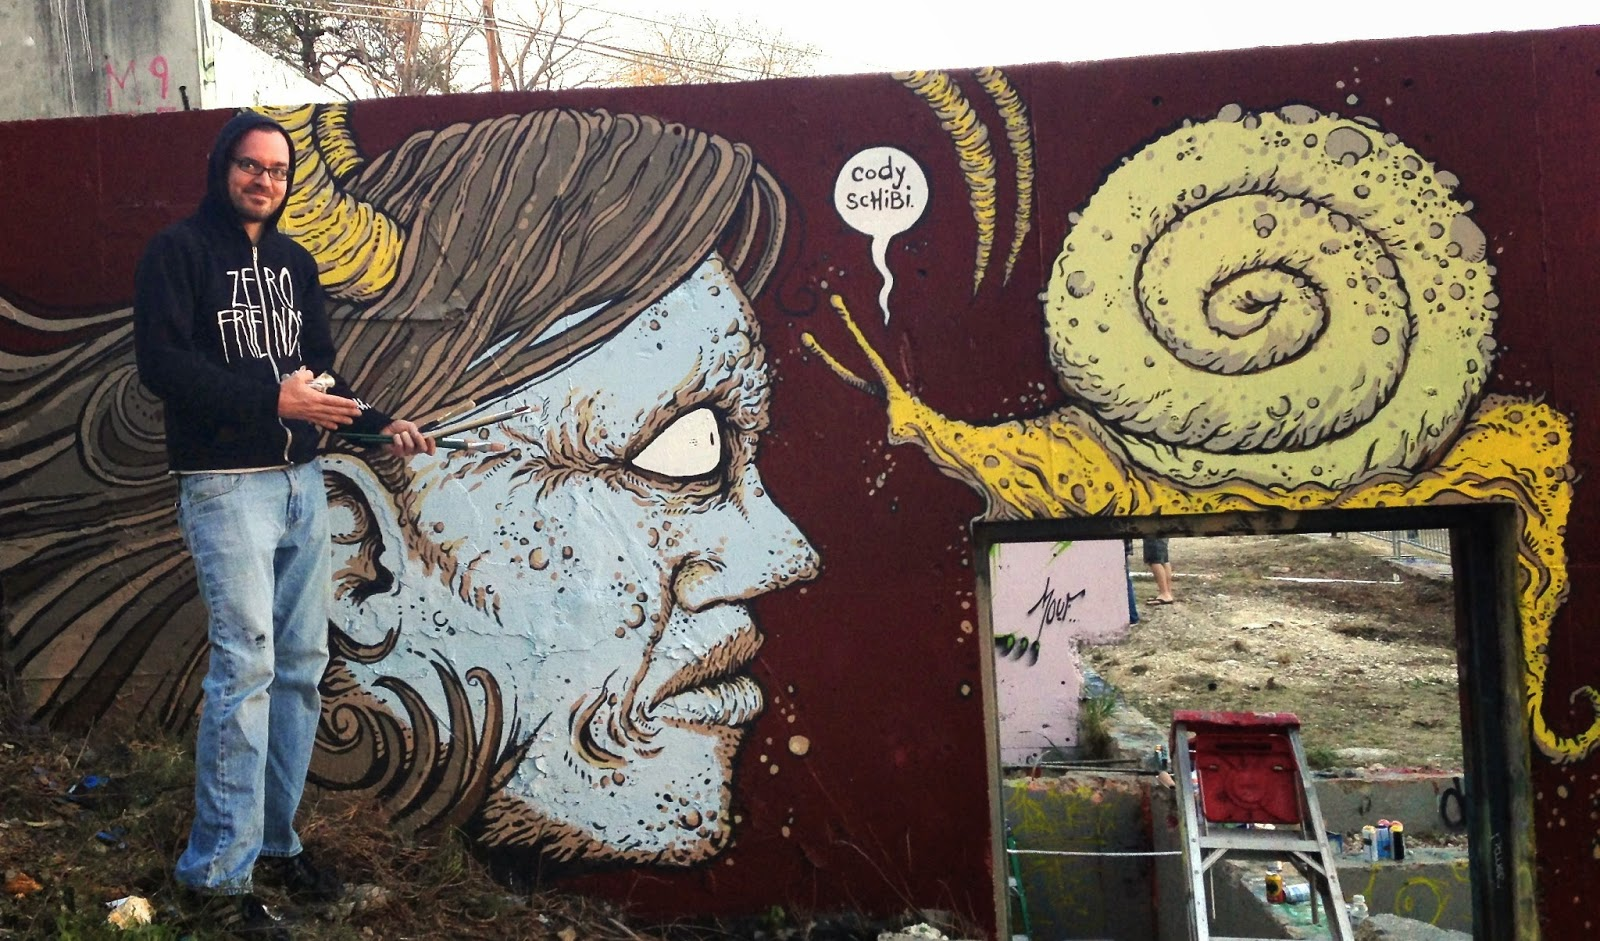 ... artists together for a full day of painting the giant concrete walls over at the HOPE Outdoor Gallery aka Castle Hill near downtown Austin. & Drawing A Blank: The Art of Cody Schibi: Art Happy Hour @ Hotel San ...